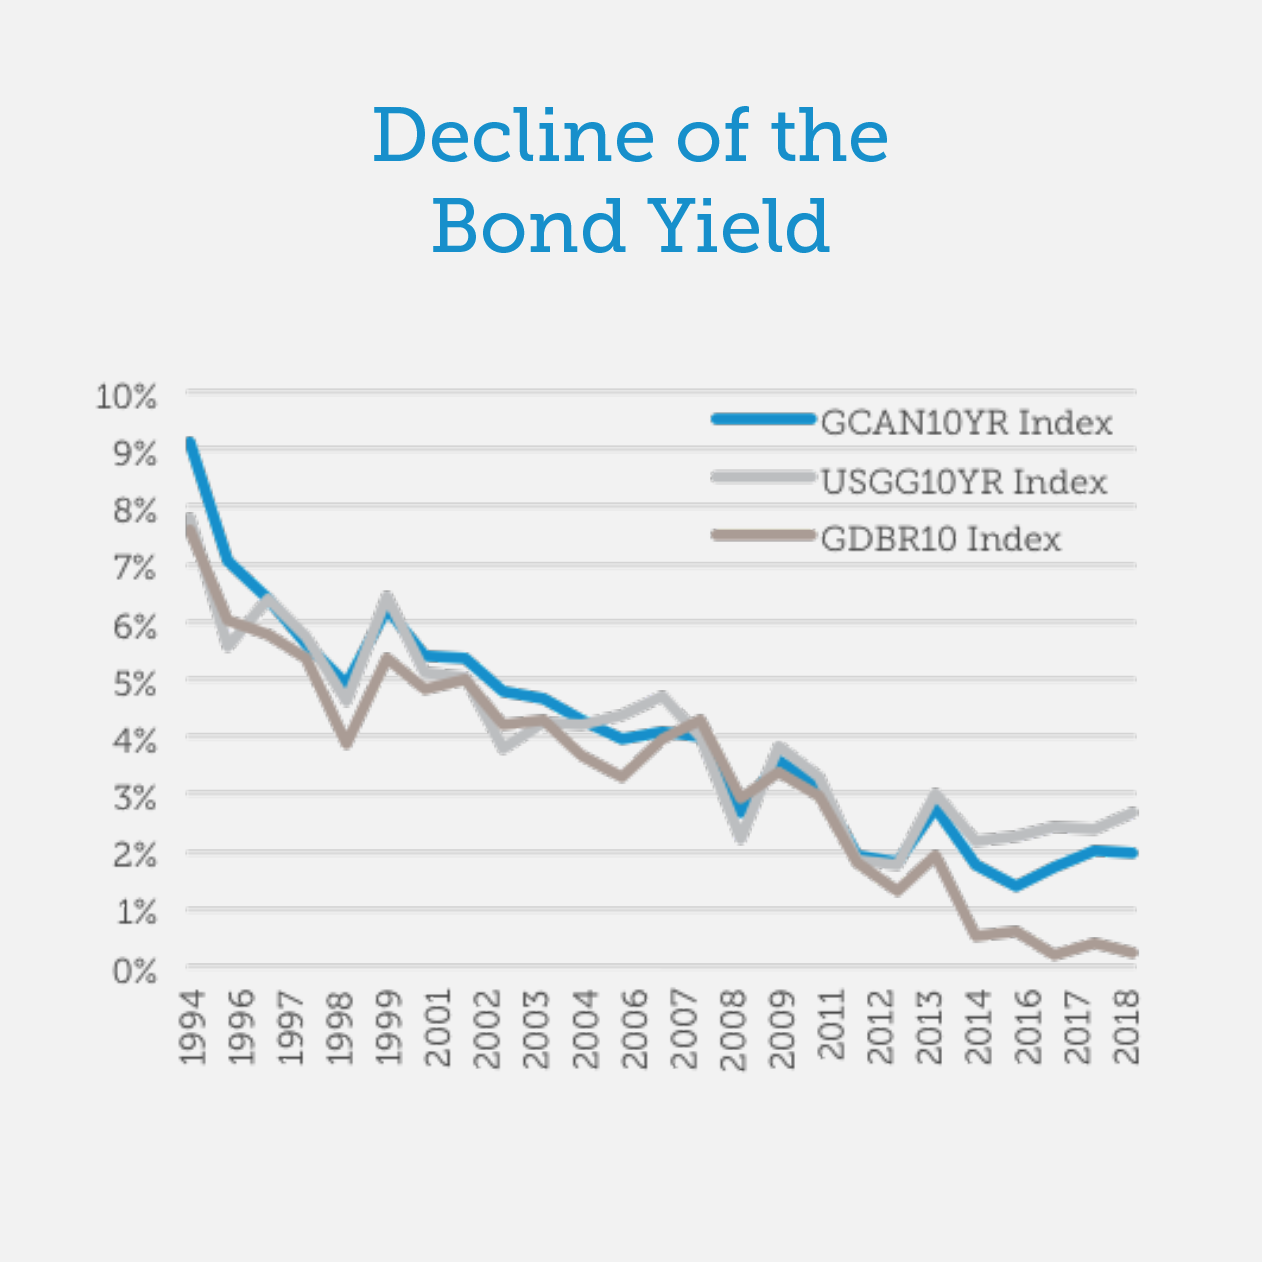 Decline of the Bond Yield up to 2018